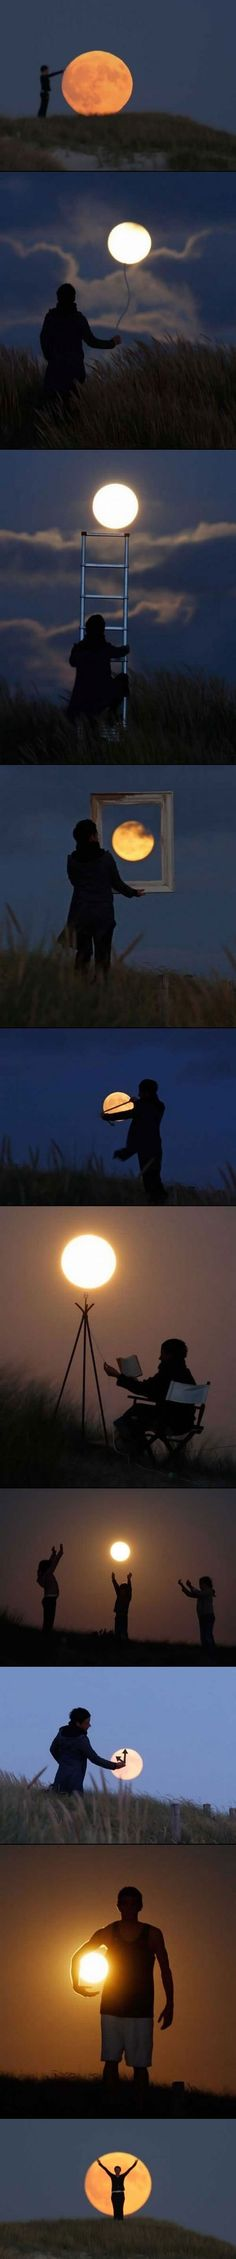 Playing with the moon, I want to do this someday!